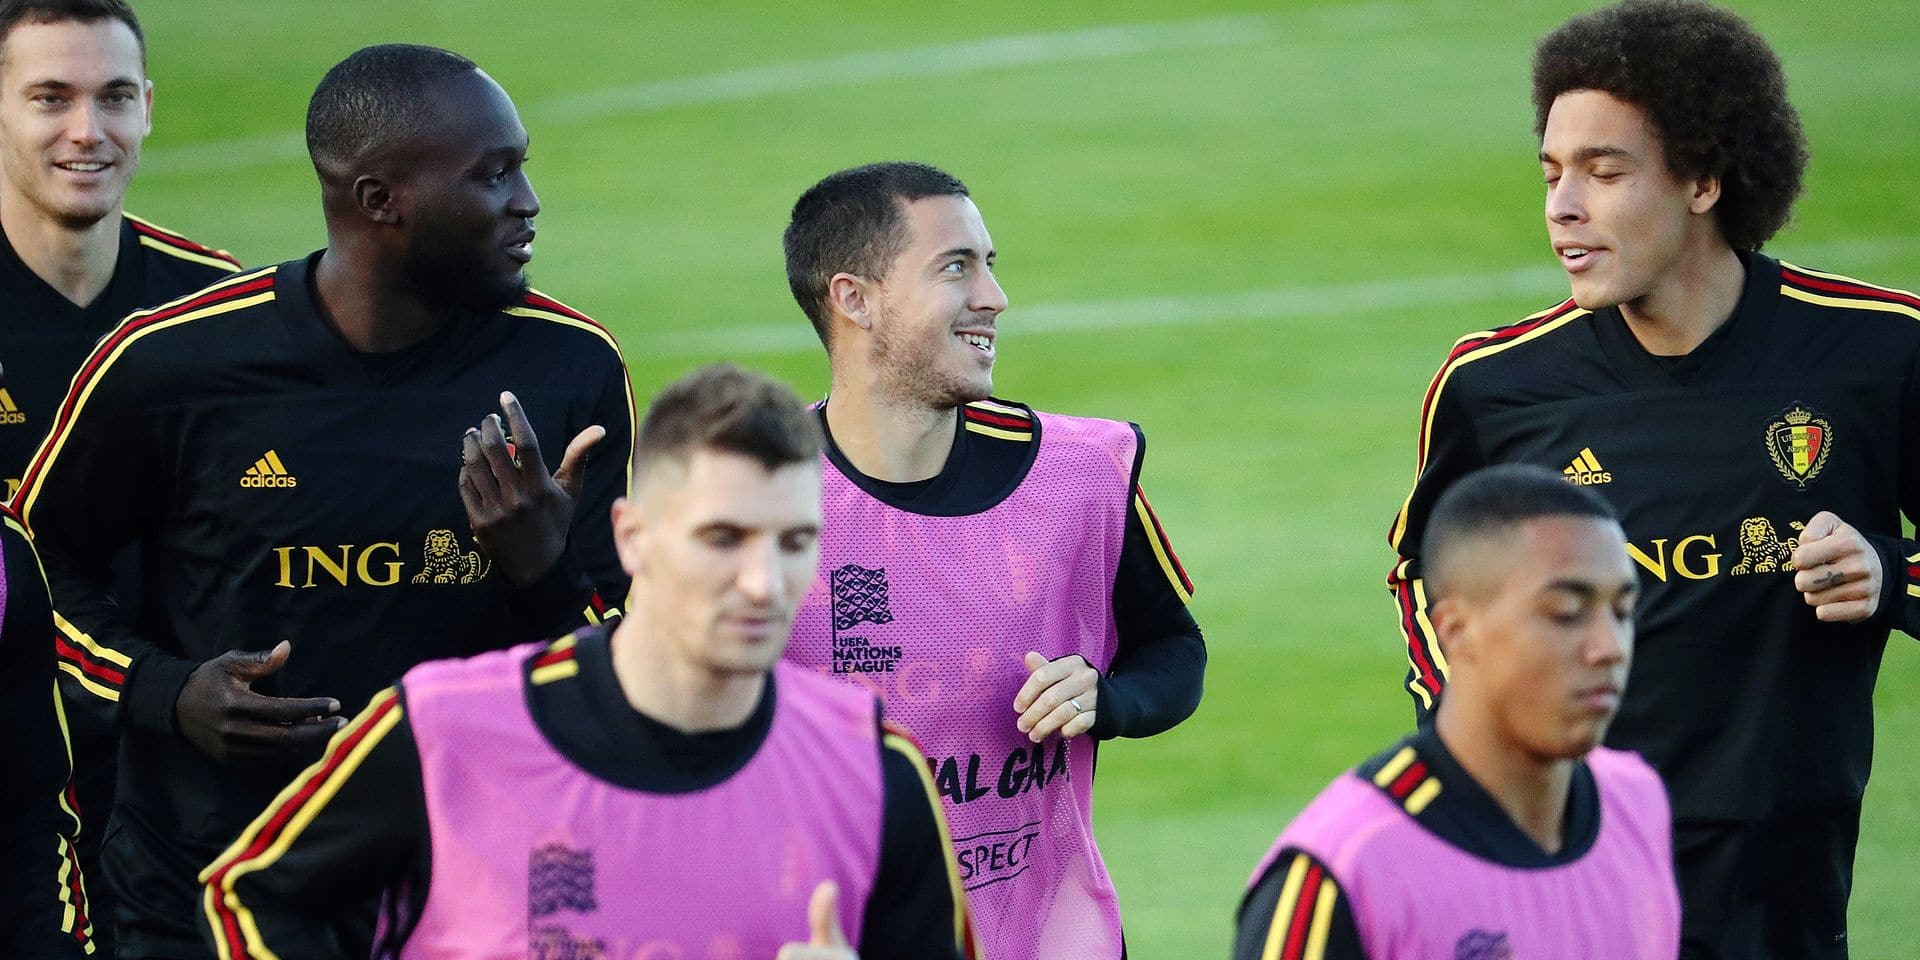 Belgium's Romelu Lukaku, Belgium's Eden Hazard and Belgium's Axel Witsel pictured during a training session of Belgian national team the Red Devils in Tubize, Thursday 11 October 2018. Belgium plays their second game in the Nations League against Switzerland on Friday. BELGA PHOTO VIRGINIE LEFOUR